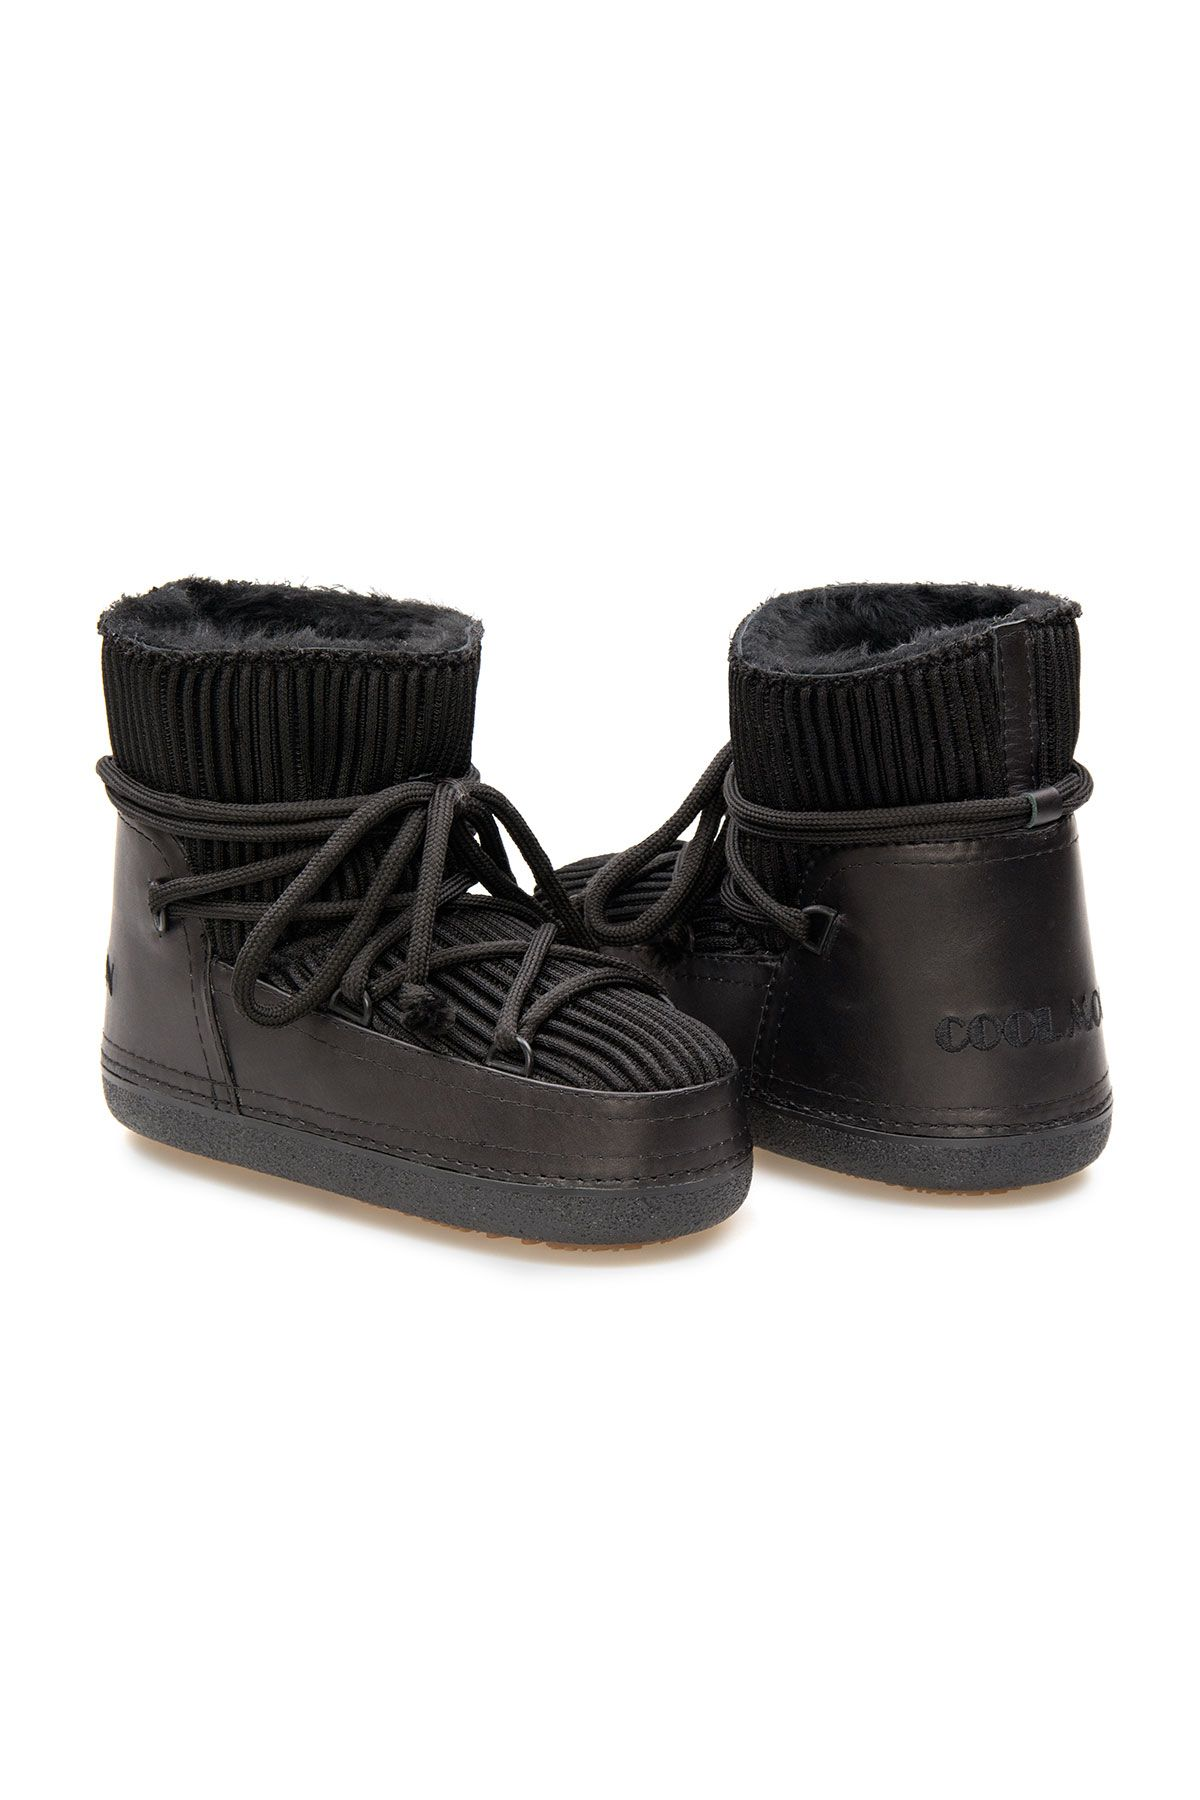 Cool Moon Genuine Sheepskin Lined Women's Snow Boots 251309 Black